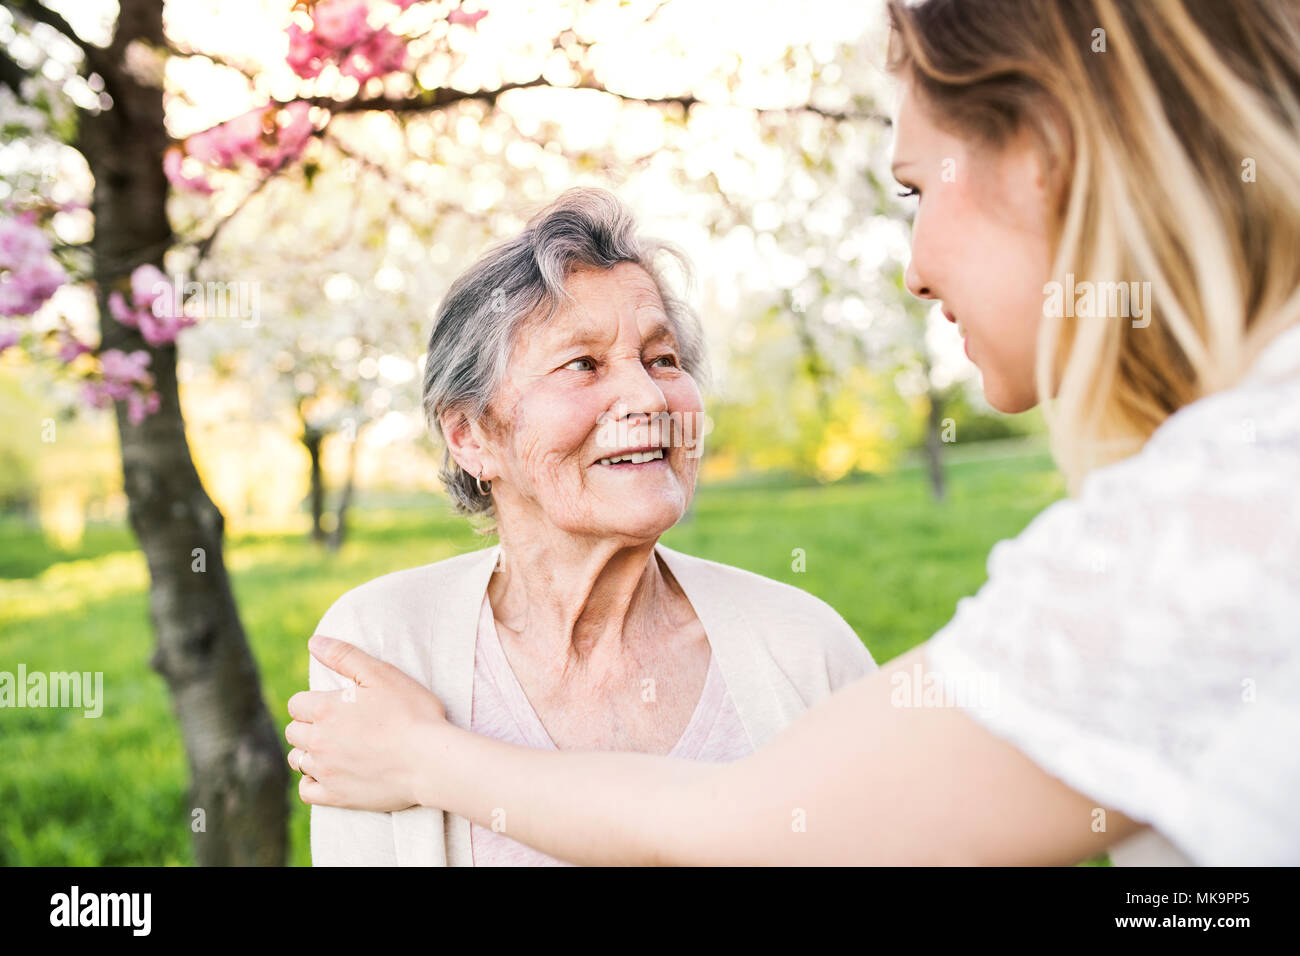 Grand-mère âgée et petite-fille au printemps la nature. Photo Stock